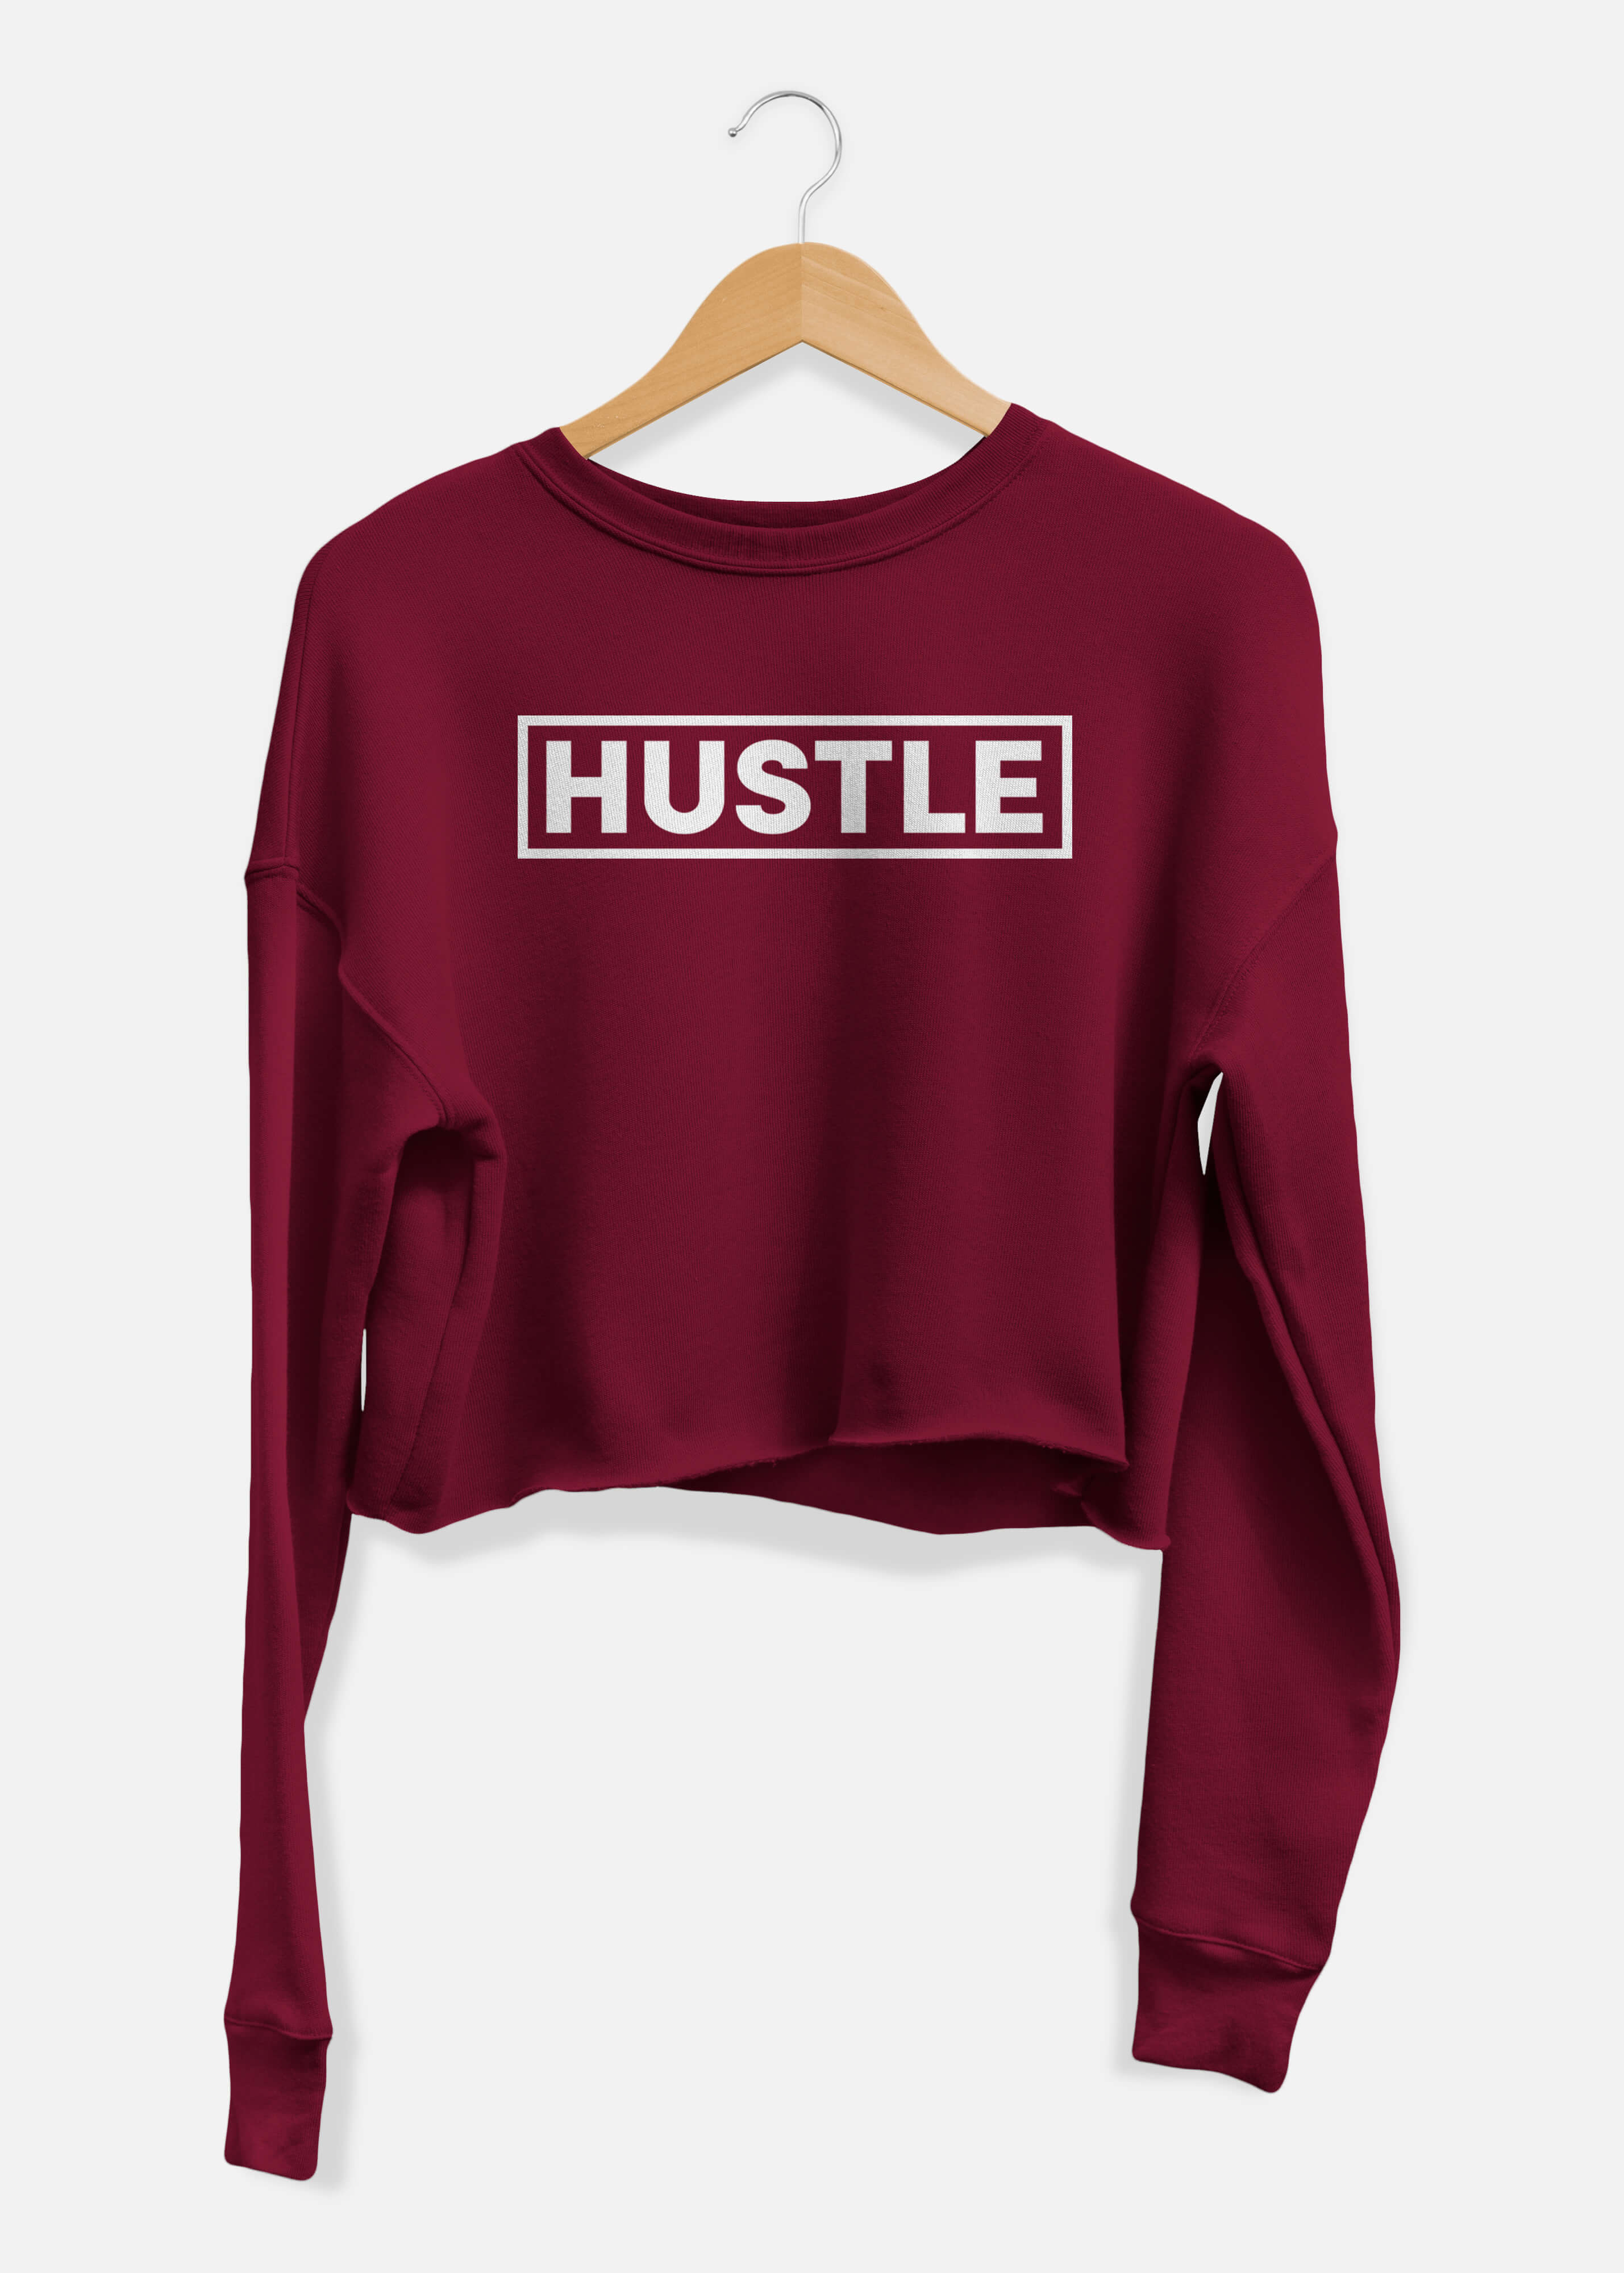 Hustle Cropped Sweater